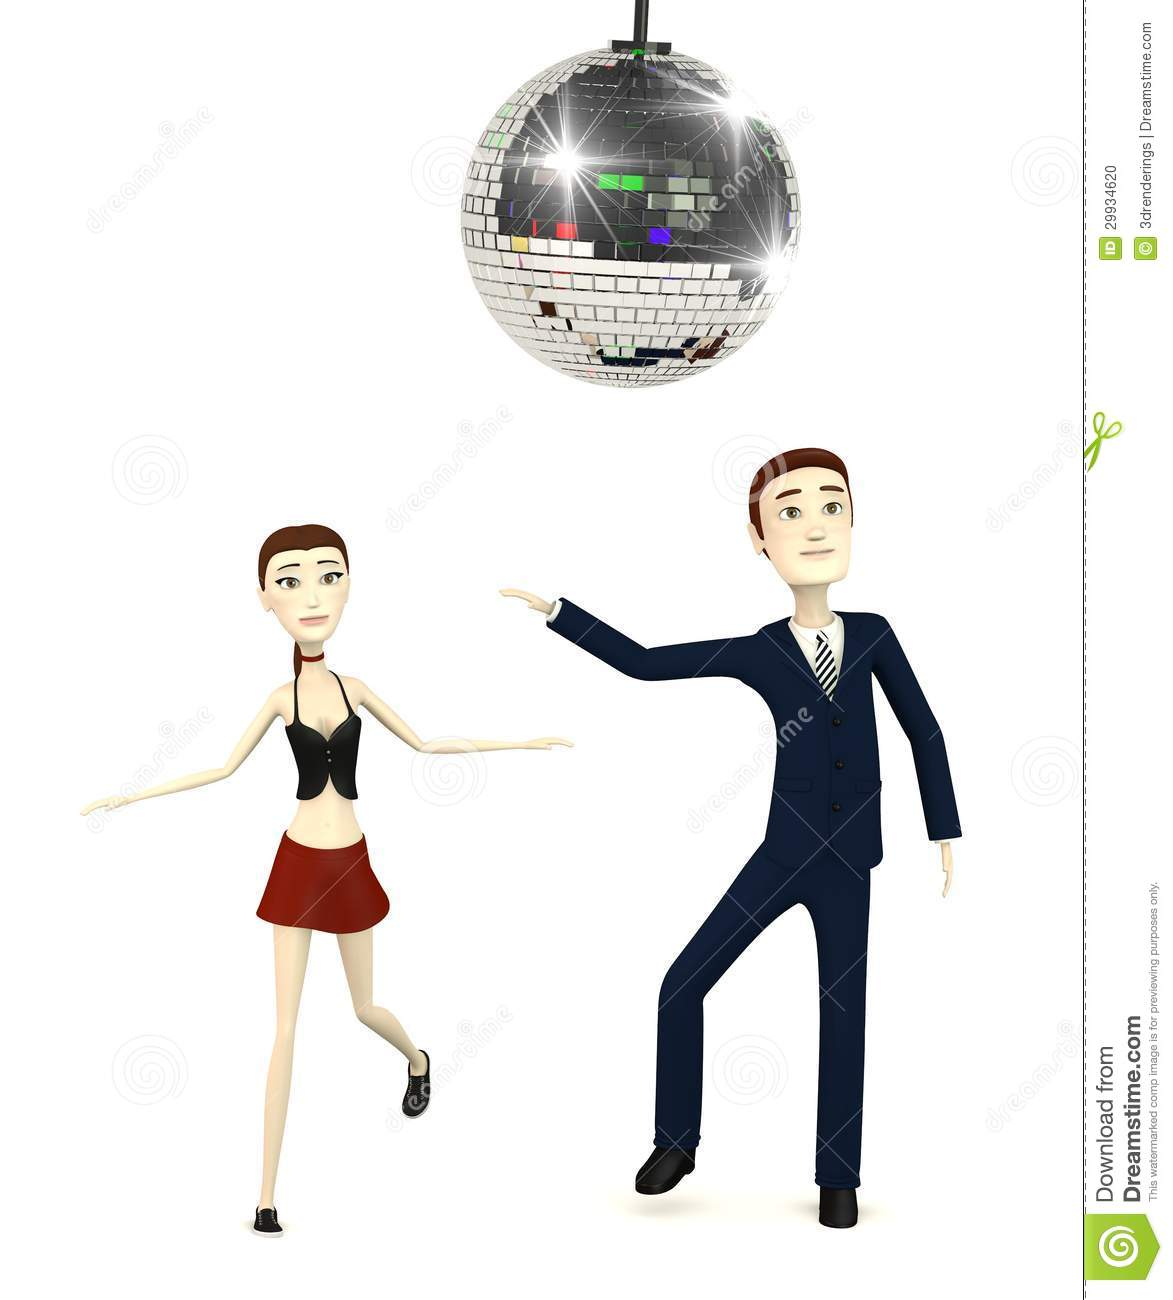 Cartoon Characters Dancing : Cartoon characters with discoball dancing stock photo